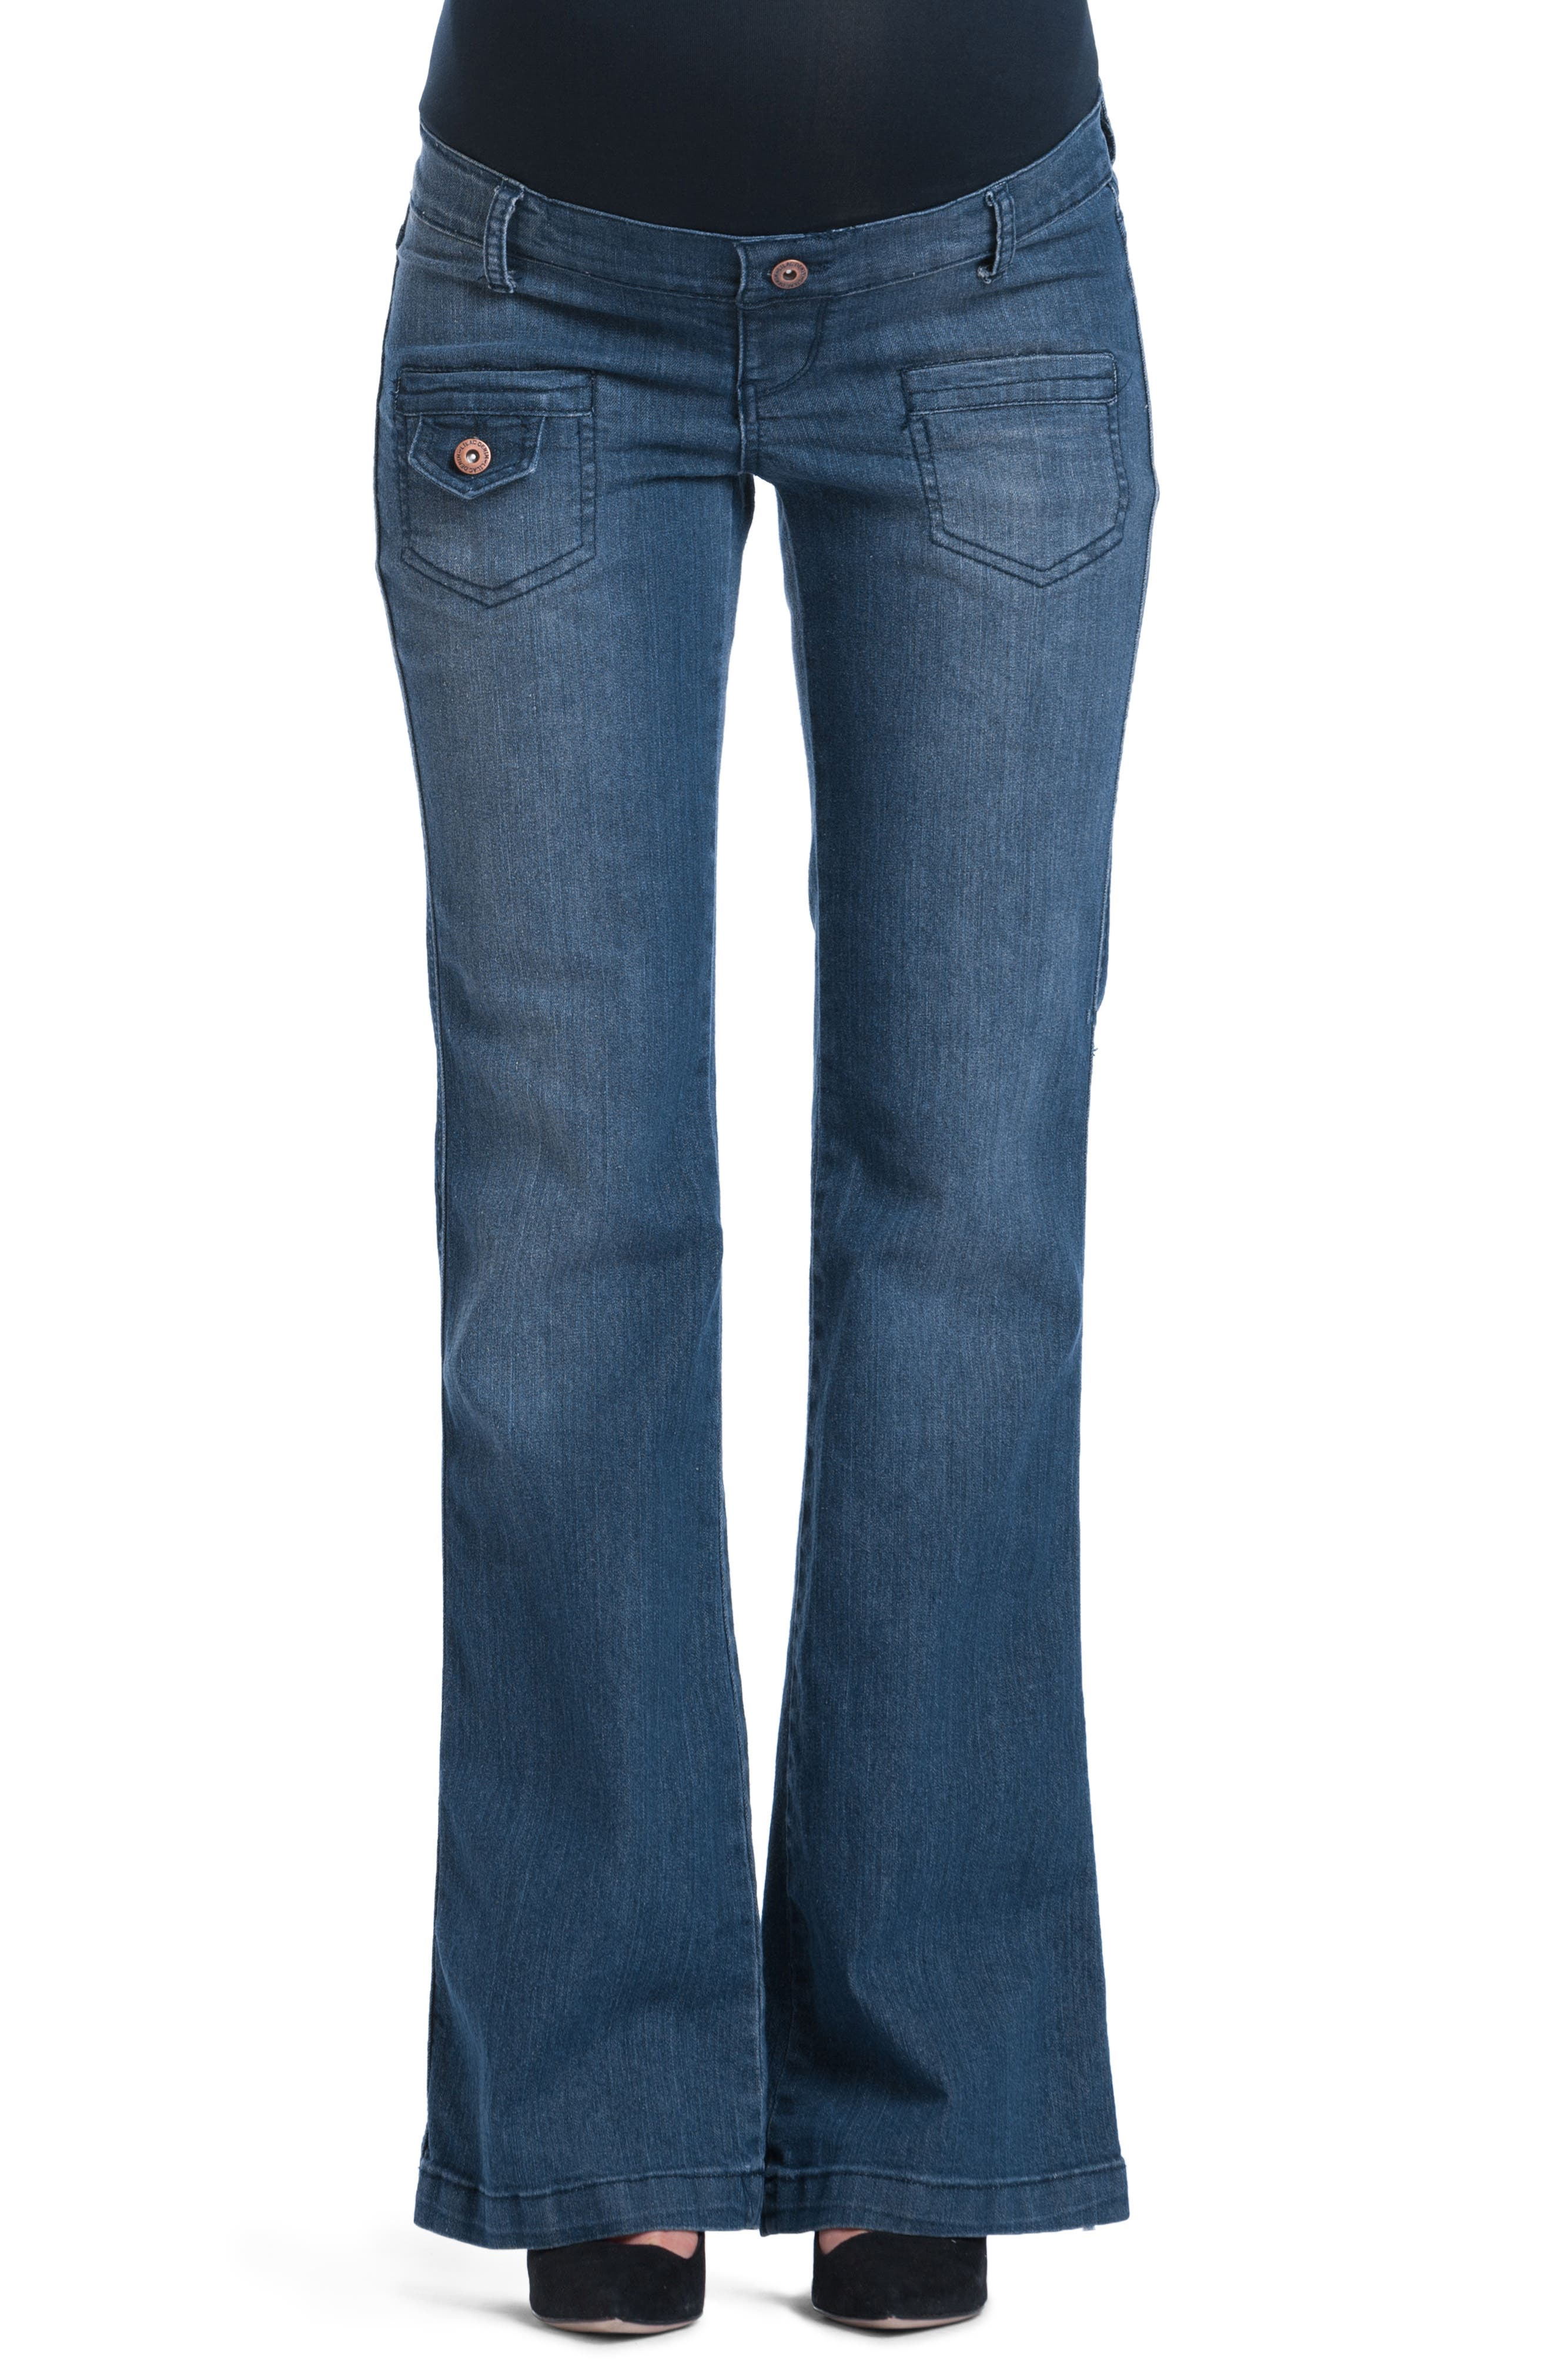 Flare Maternity Stretch Jeans,                             Main thumbnail 1, color,                             401